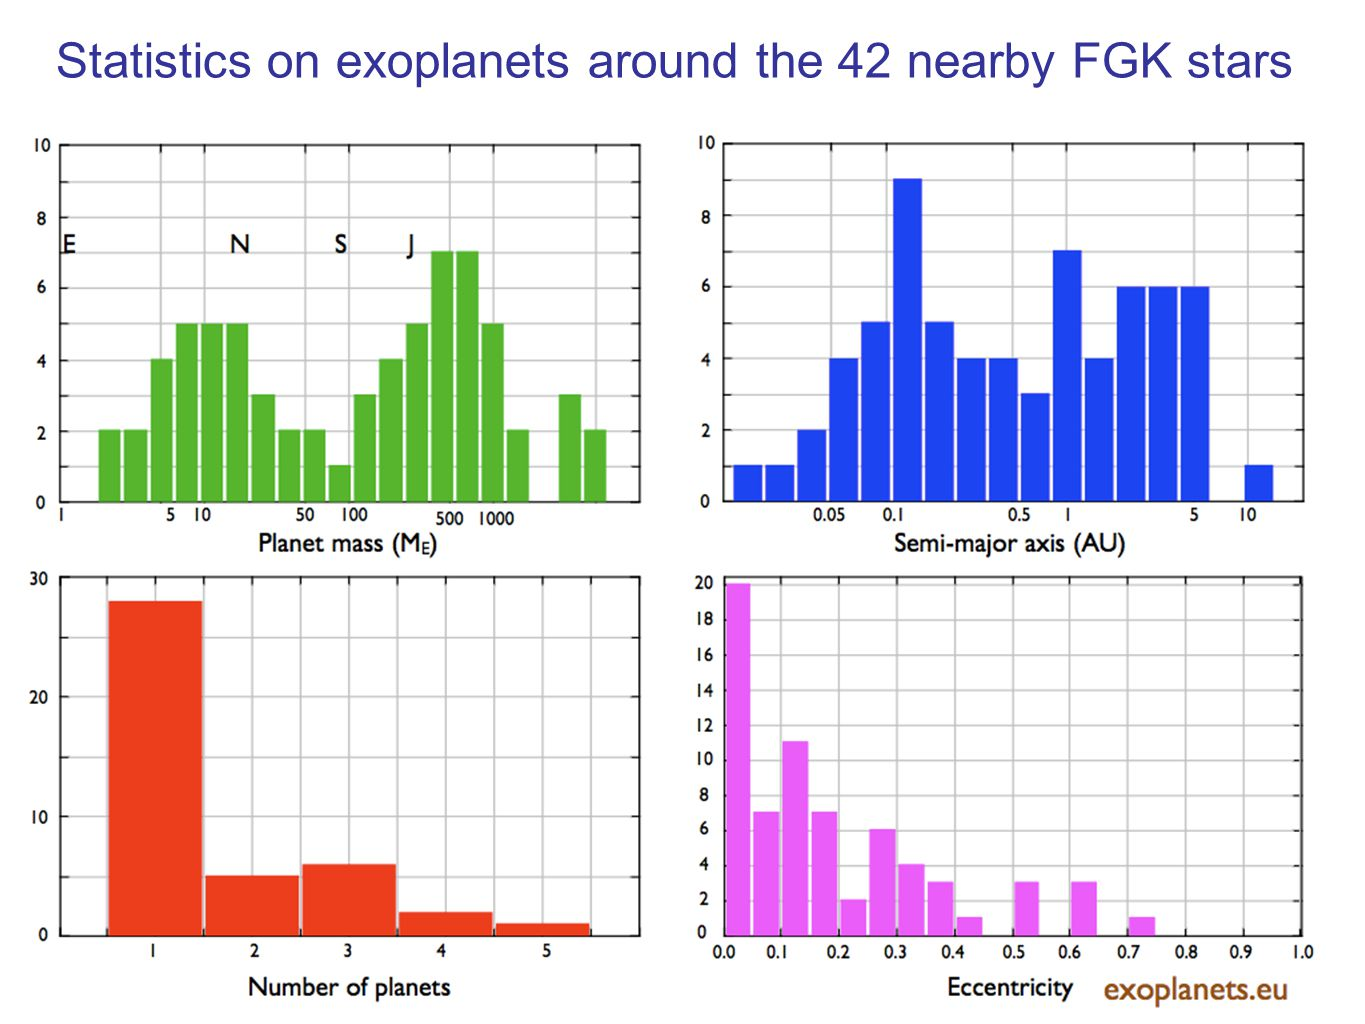 Statistics on exoplanets around the 42 nearby FGK stars